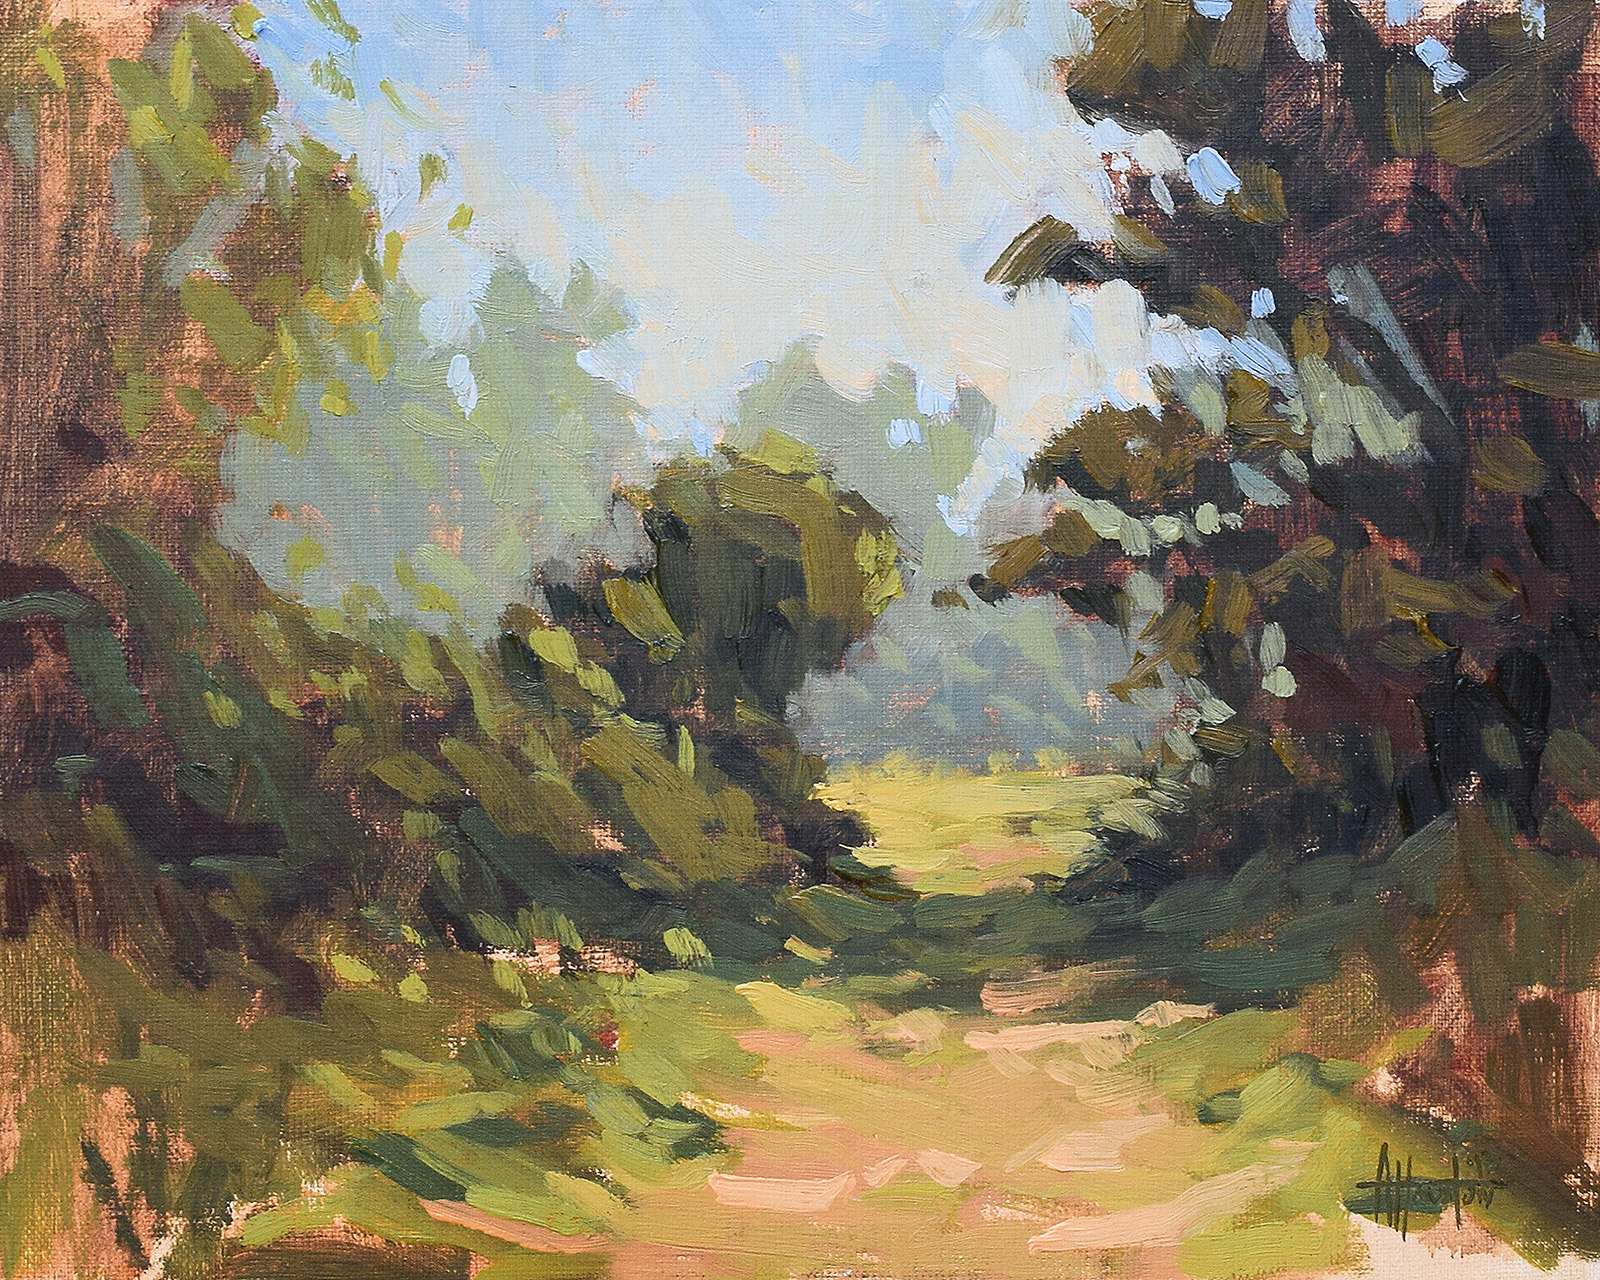 Forgotten Path - Impressionist Painting by Adam Houston